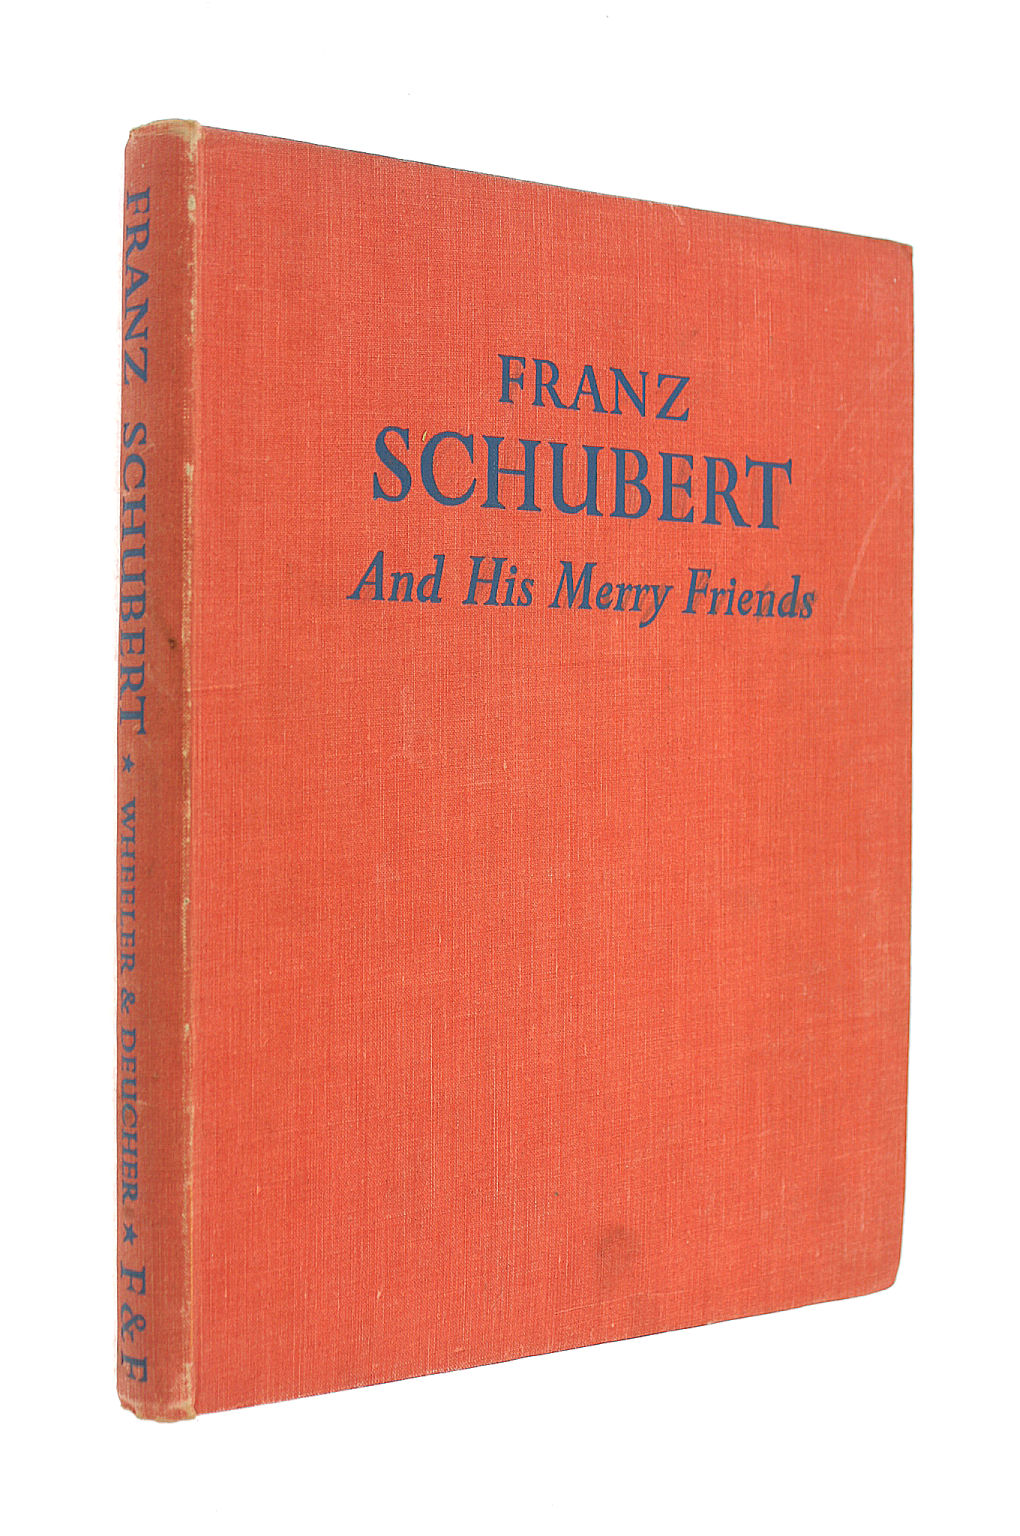 Image for FRANZ SCHUBERT AND HIS MERRY FRIENDS.